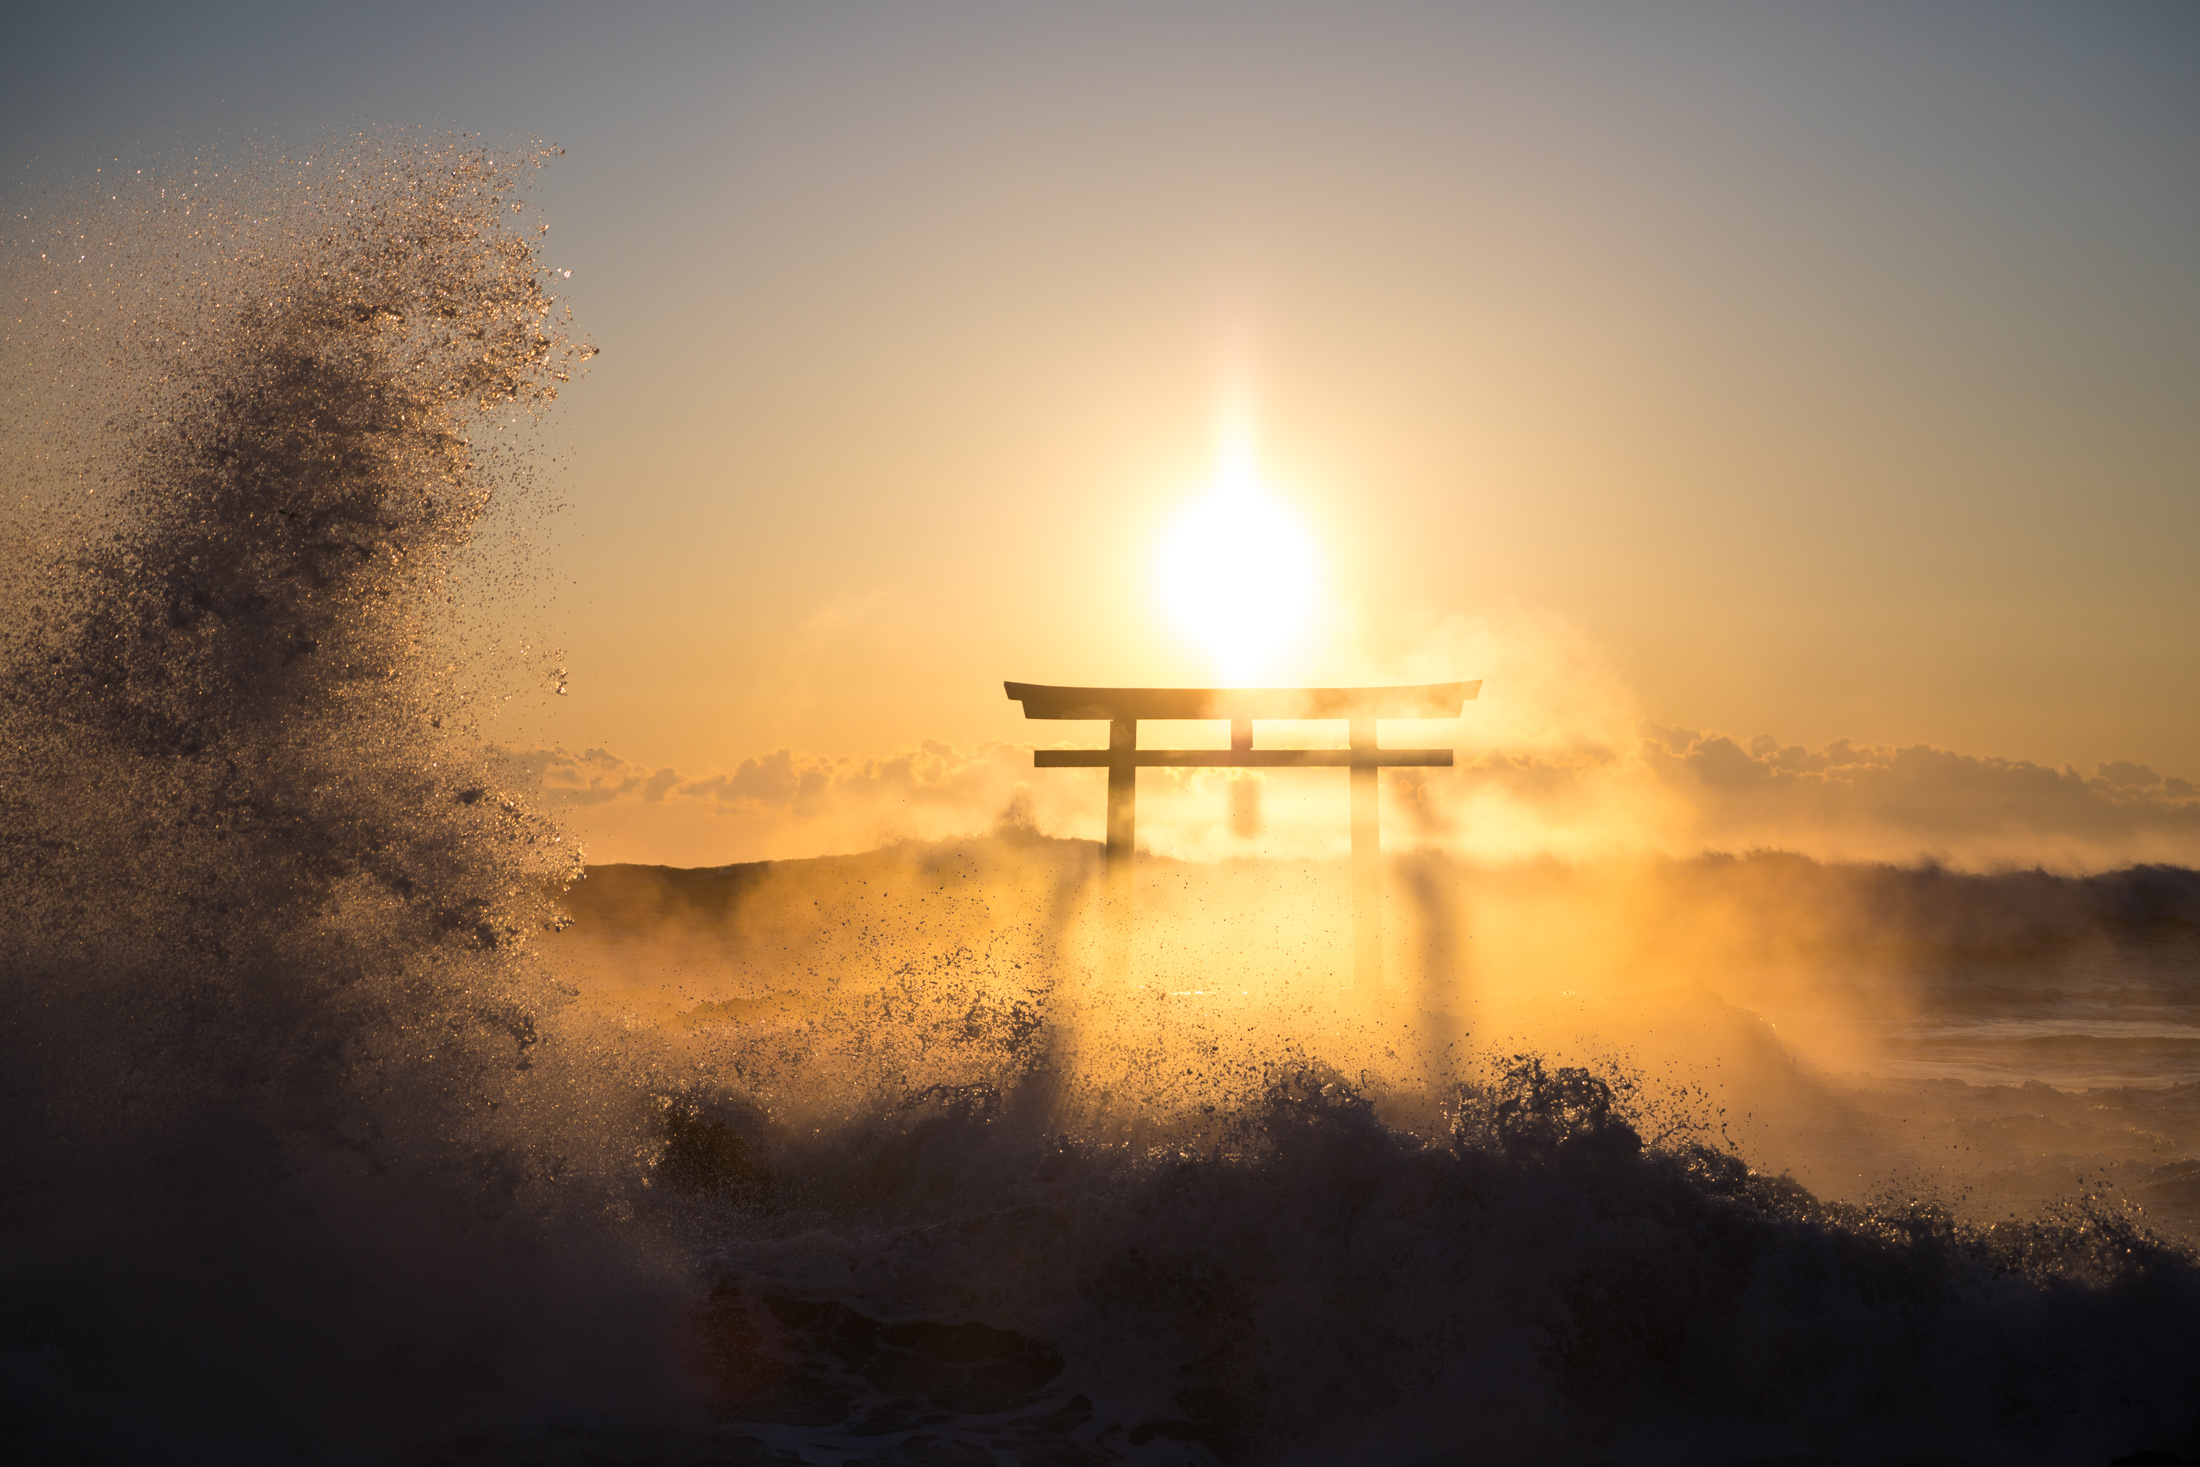 ibaraki, japan, japanese, kanto, natural, nature, ocean, religion, religious, sea, shinto, spiritual, sunrise, thing, tori